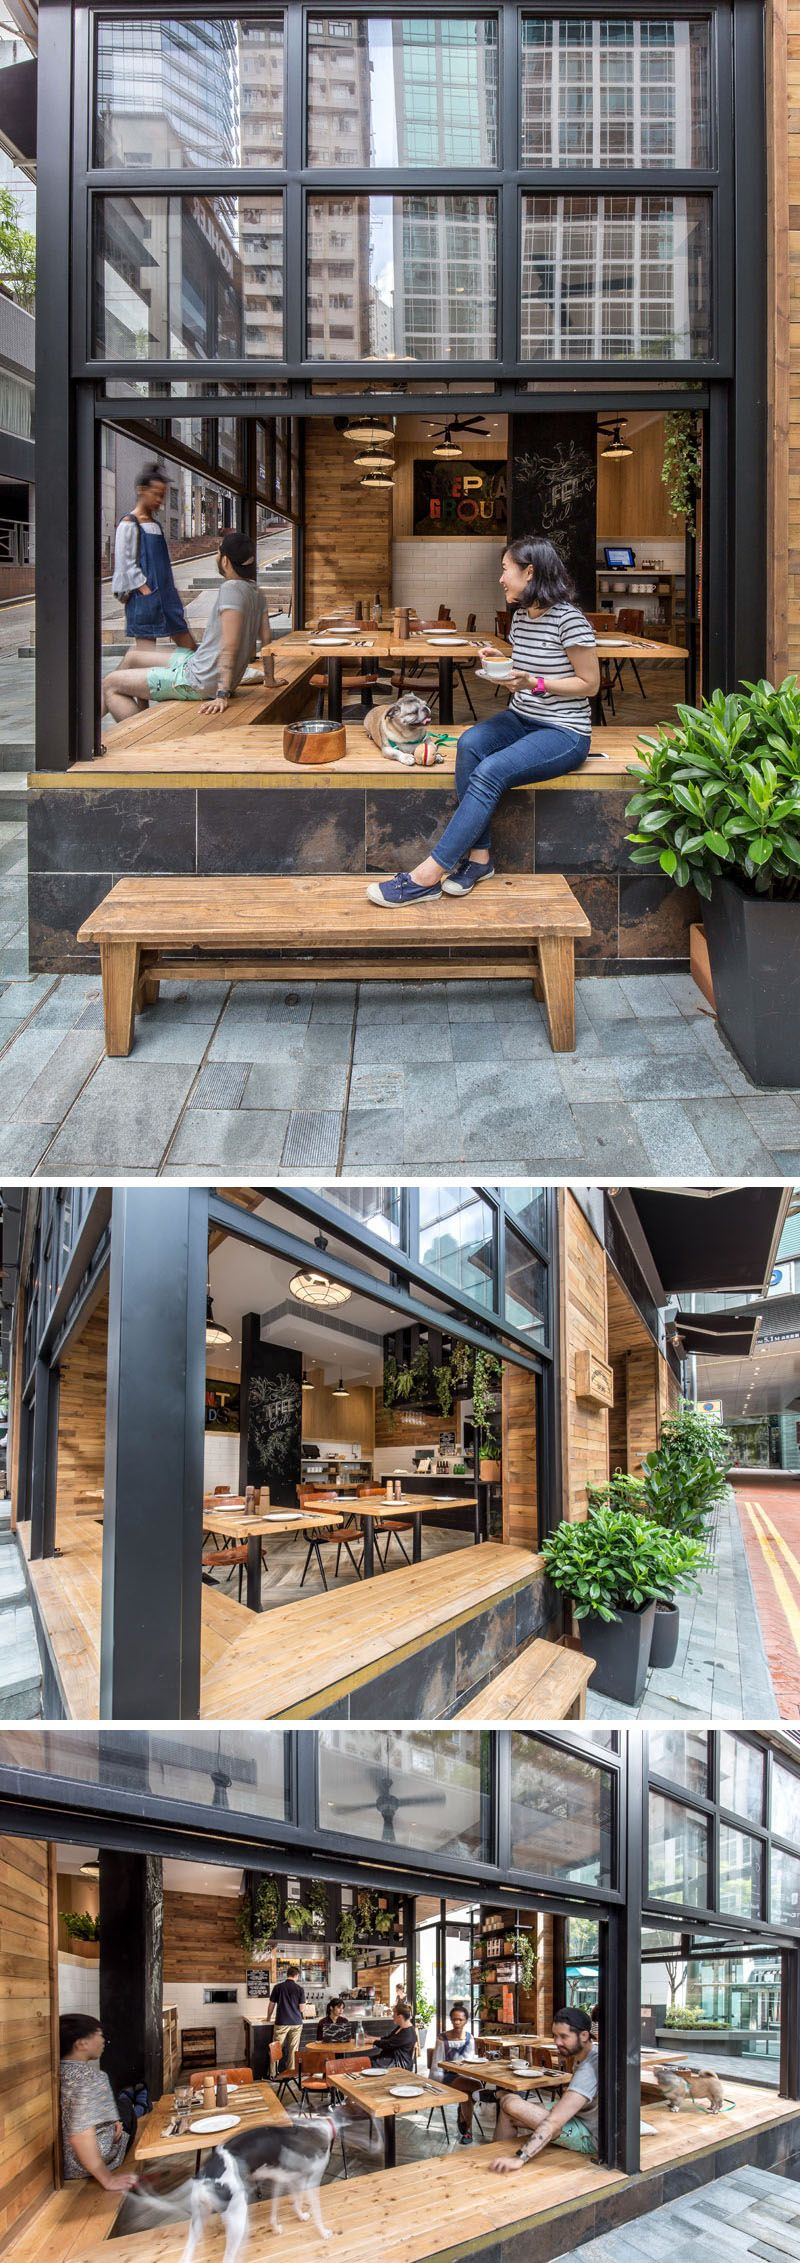 10 Unique Coffee Shop Designs In Asia | Pinterest | Cafes ...